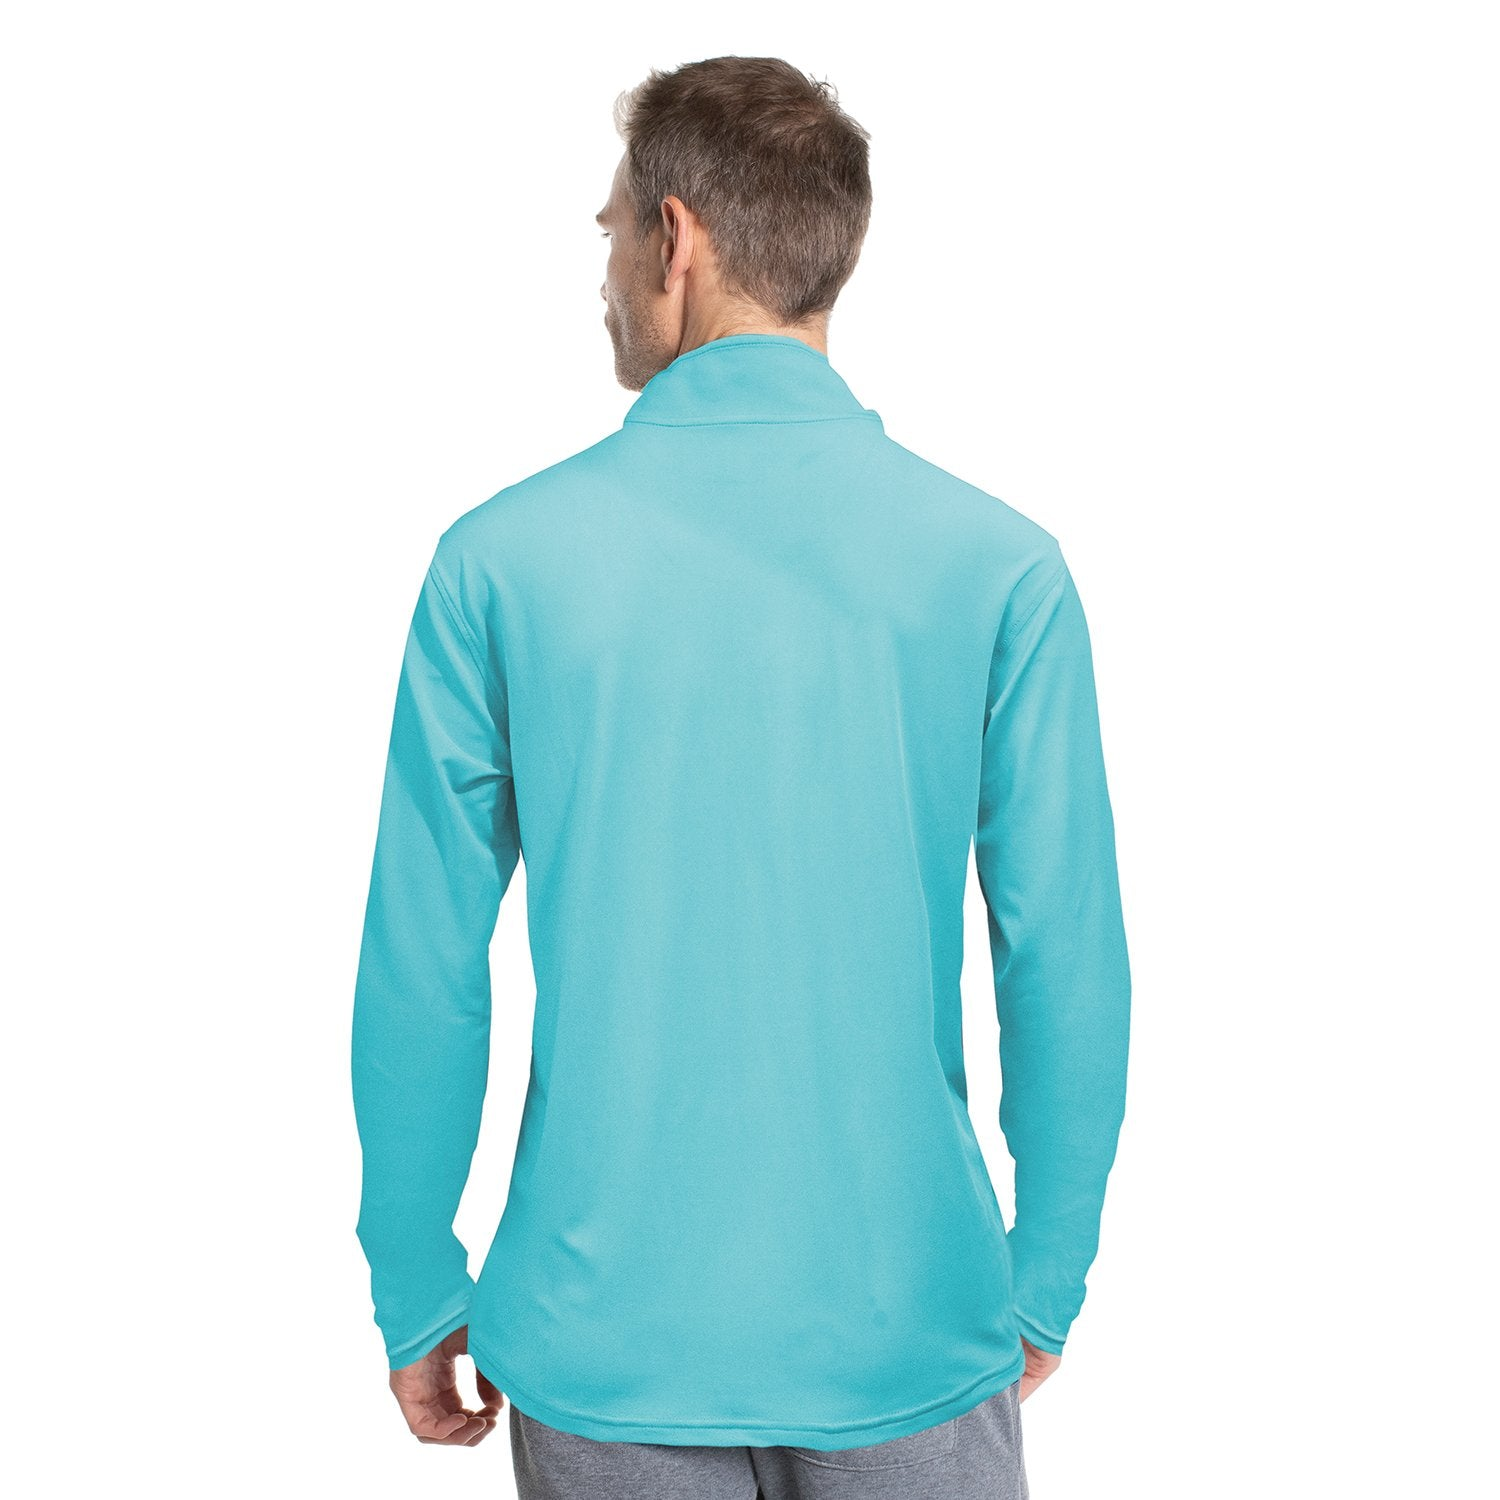 Z730BF Lightweight Quarter Zip - Blue Fin